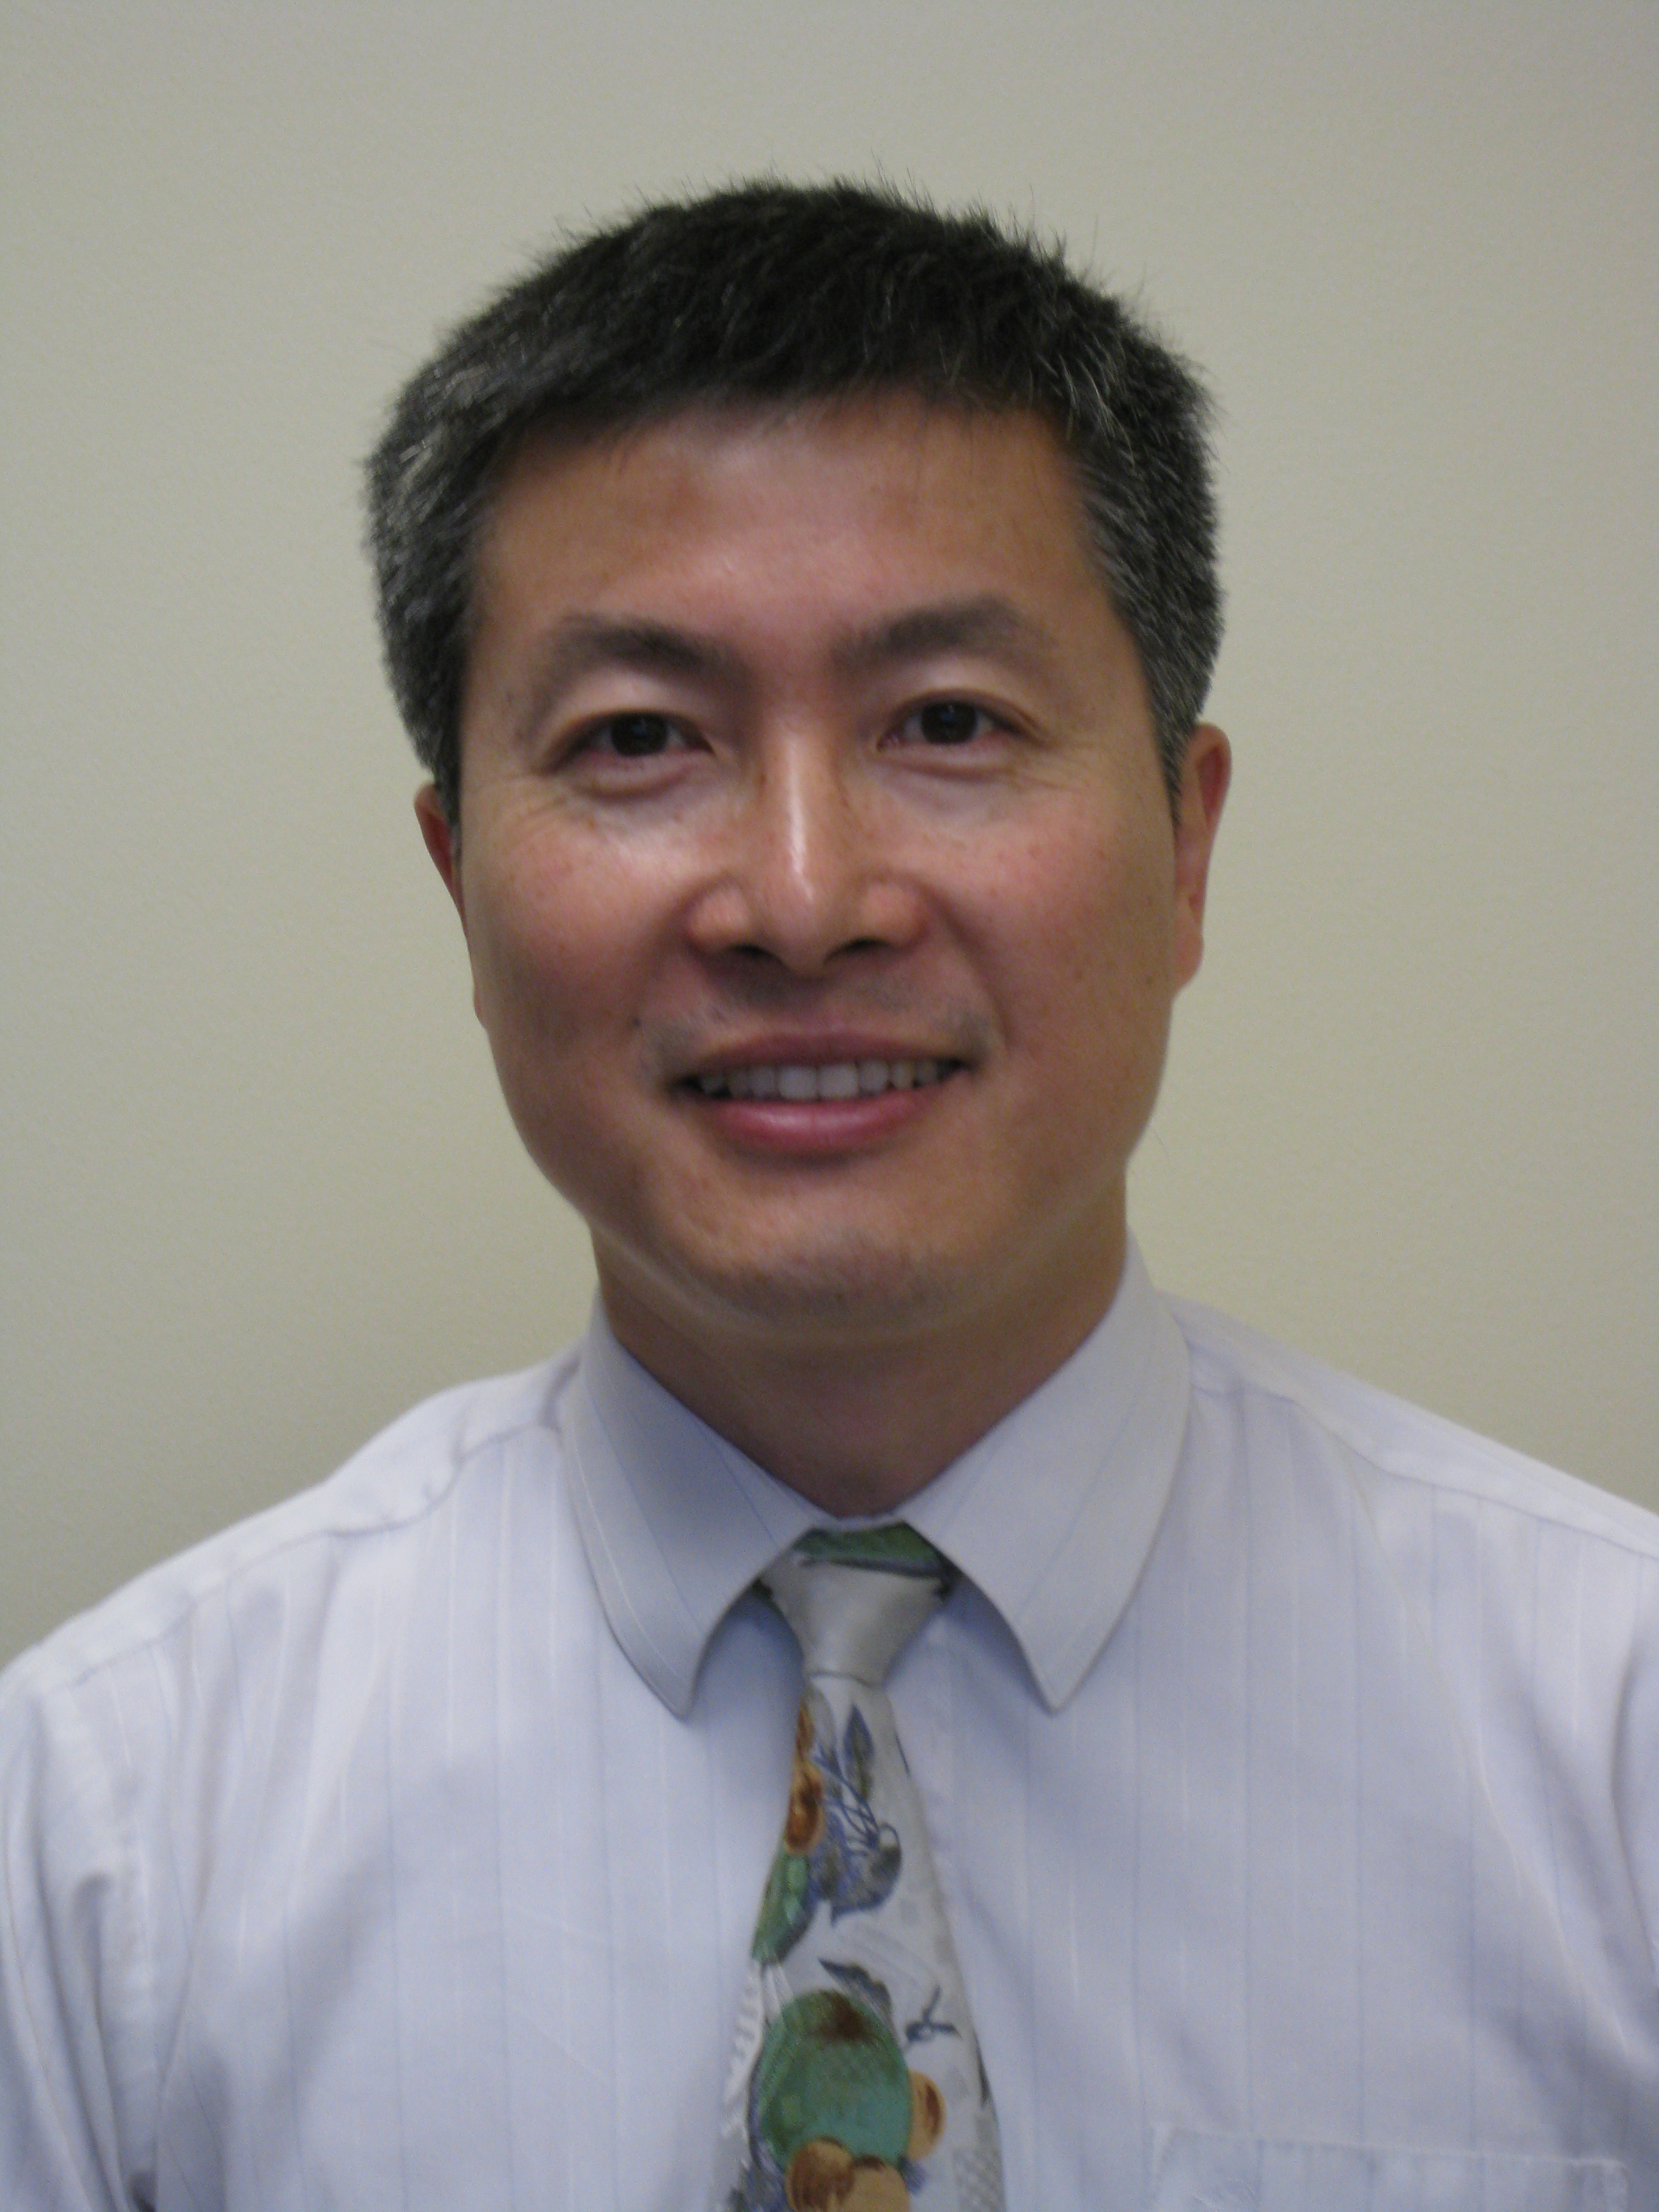 Zhaoming Chen, MD